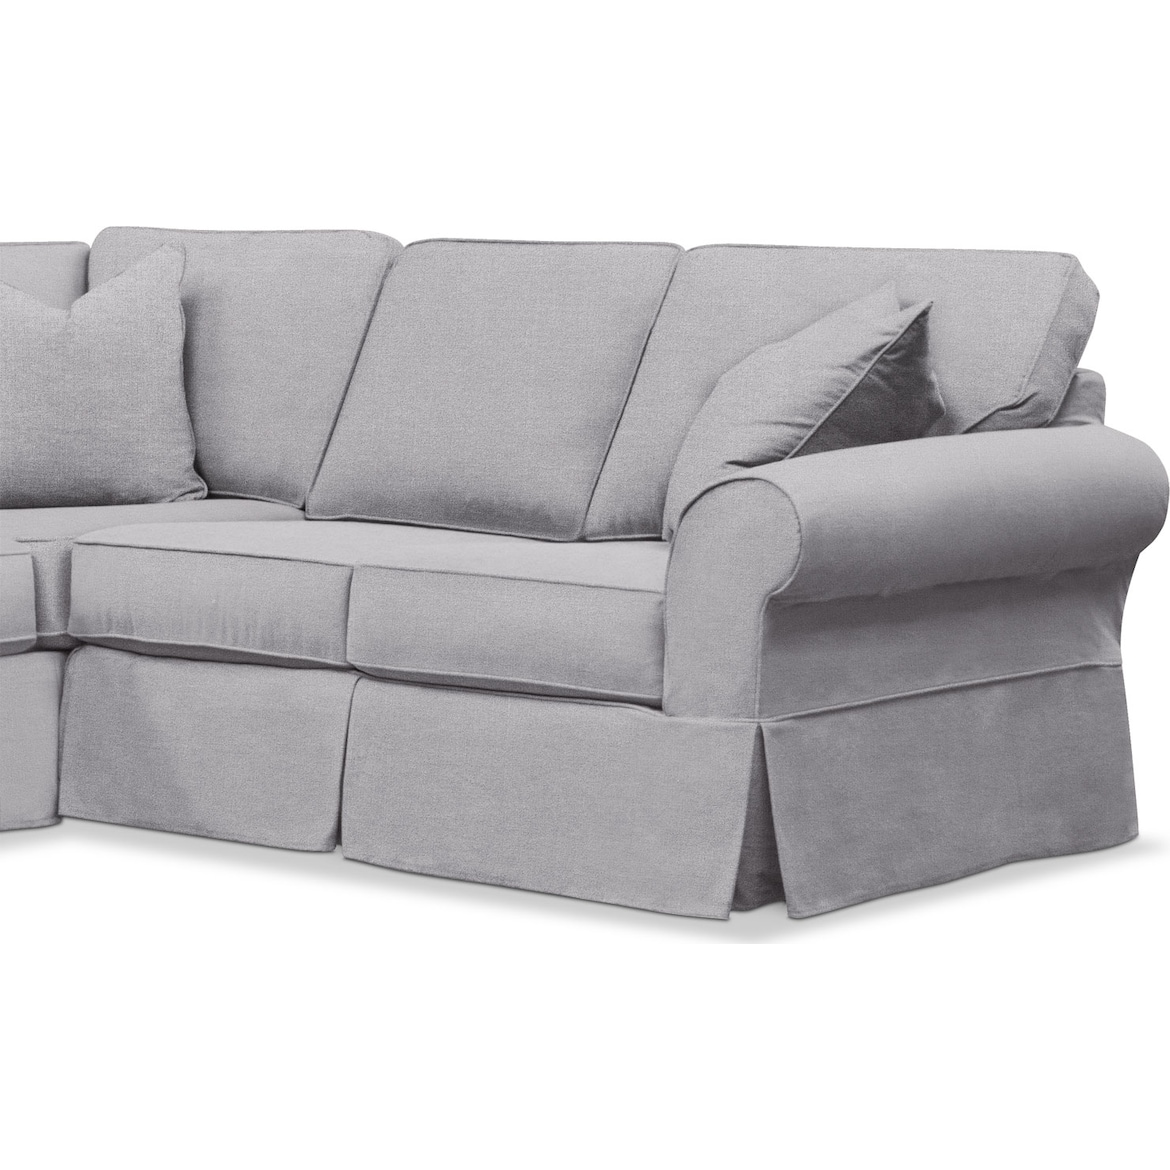 Sawyer 2 Piece Small Slipcover Sectional Value City